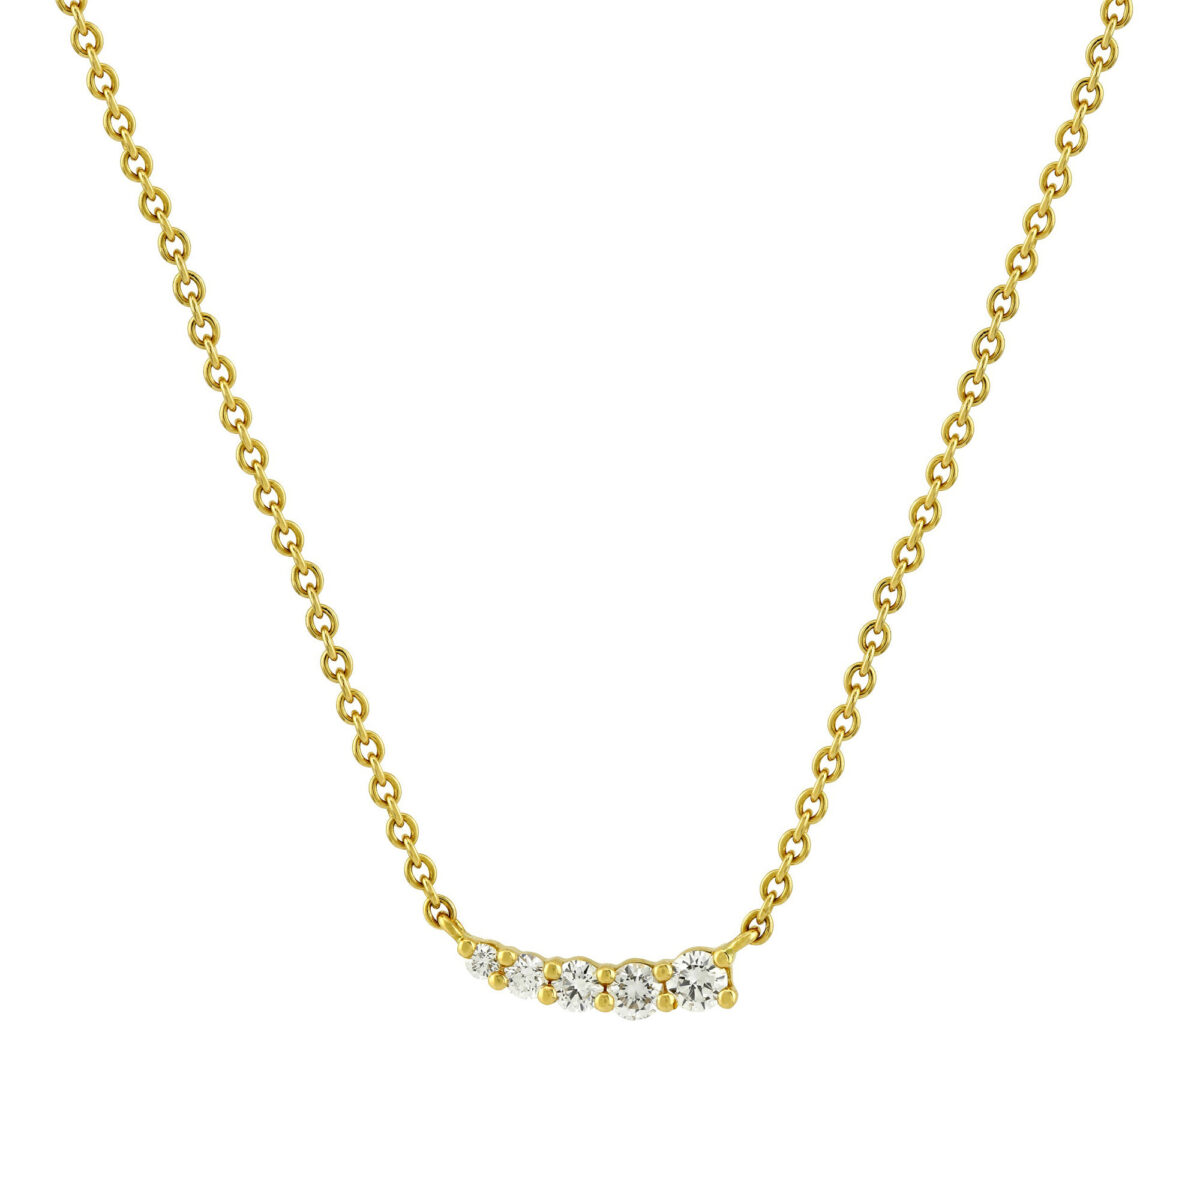 product/f/i/five_stone_horizontact_necklace_1.jpg;;product/f/i/five_stone_horizontact_necklace_3.jpg;;product/f/i/five_stone_horizontact_necklace_4.jpg;;product/d/m/dmr-packaging_172.jpg